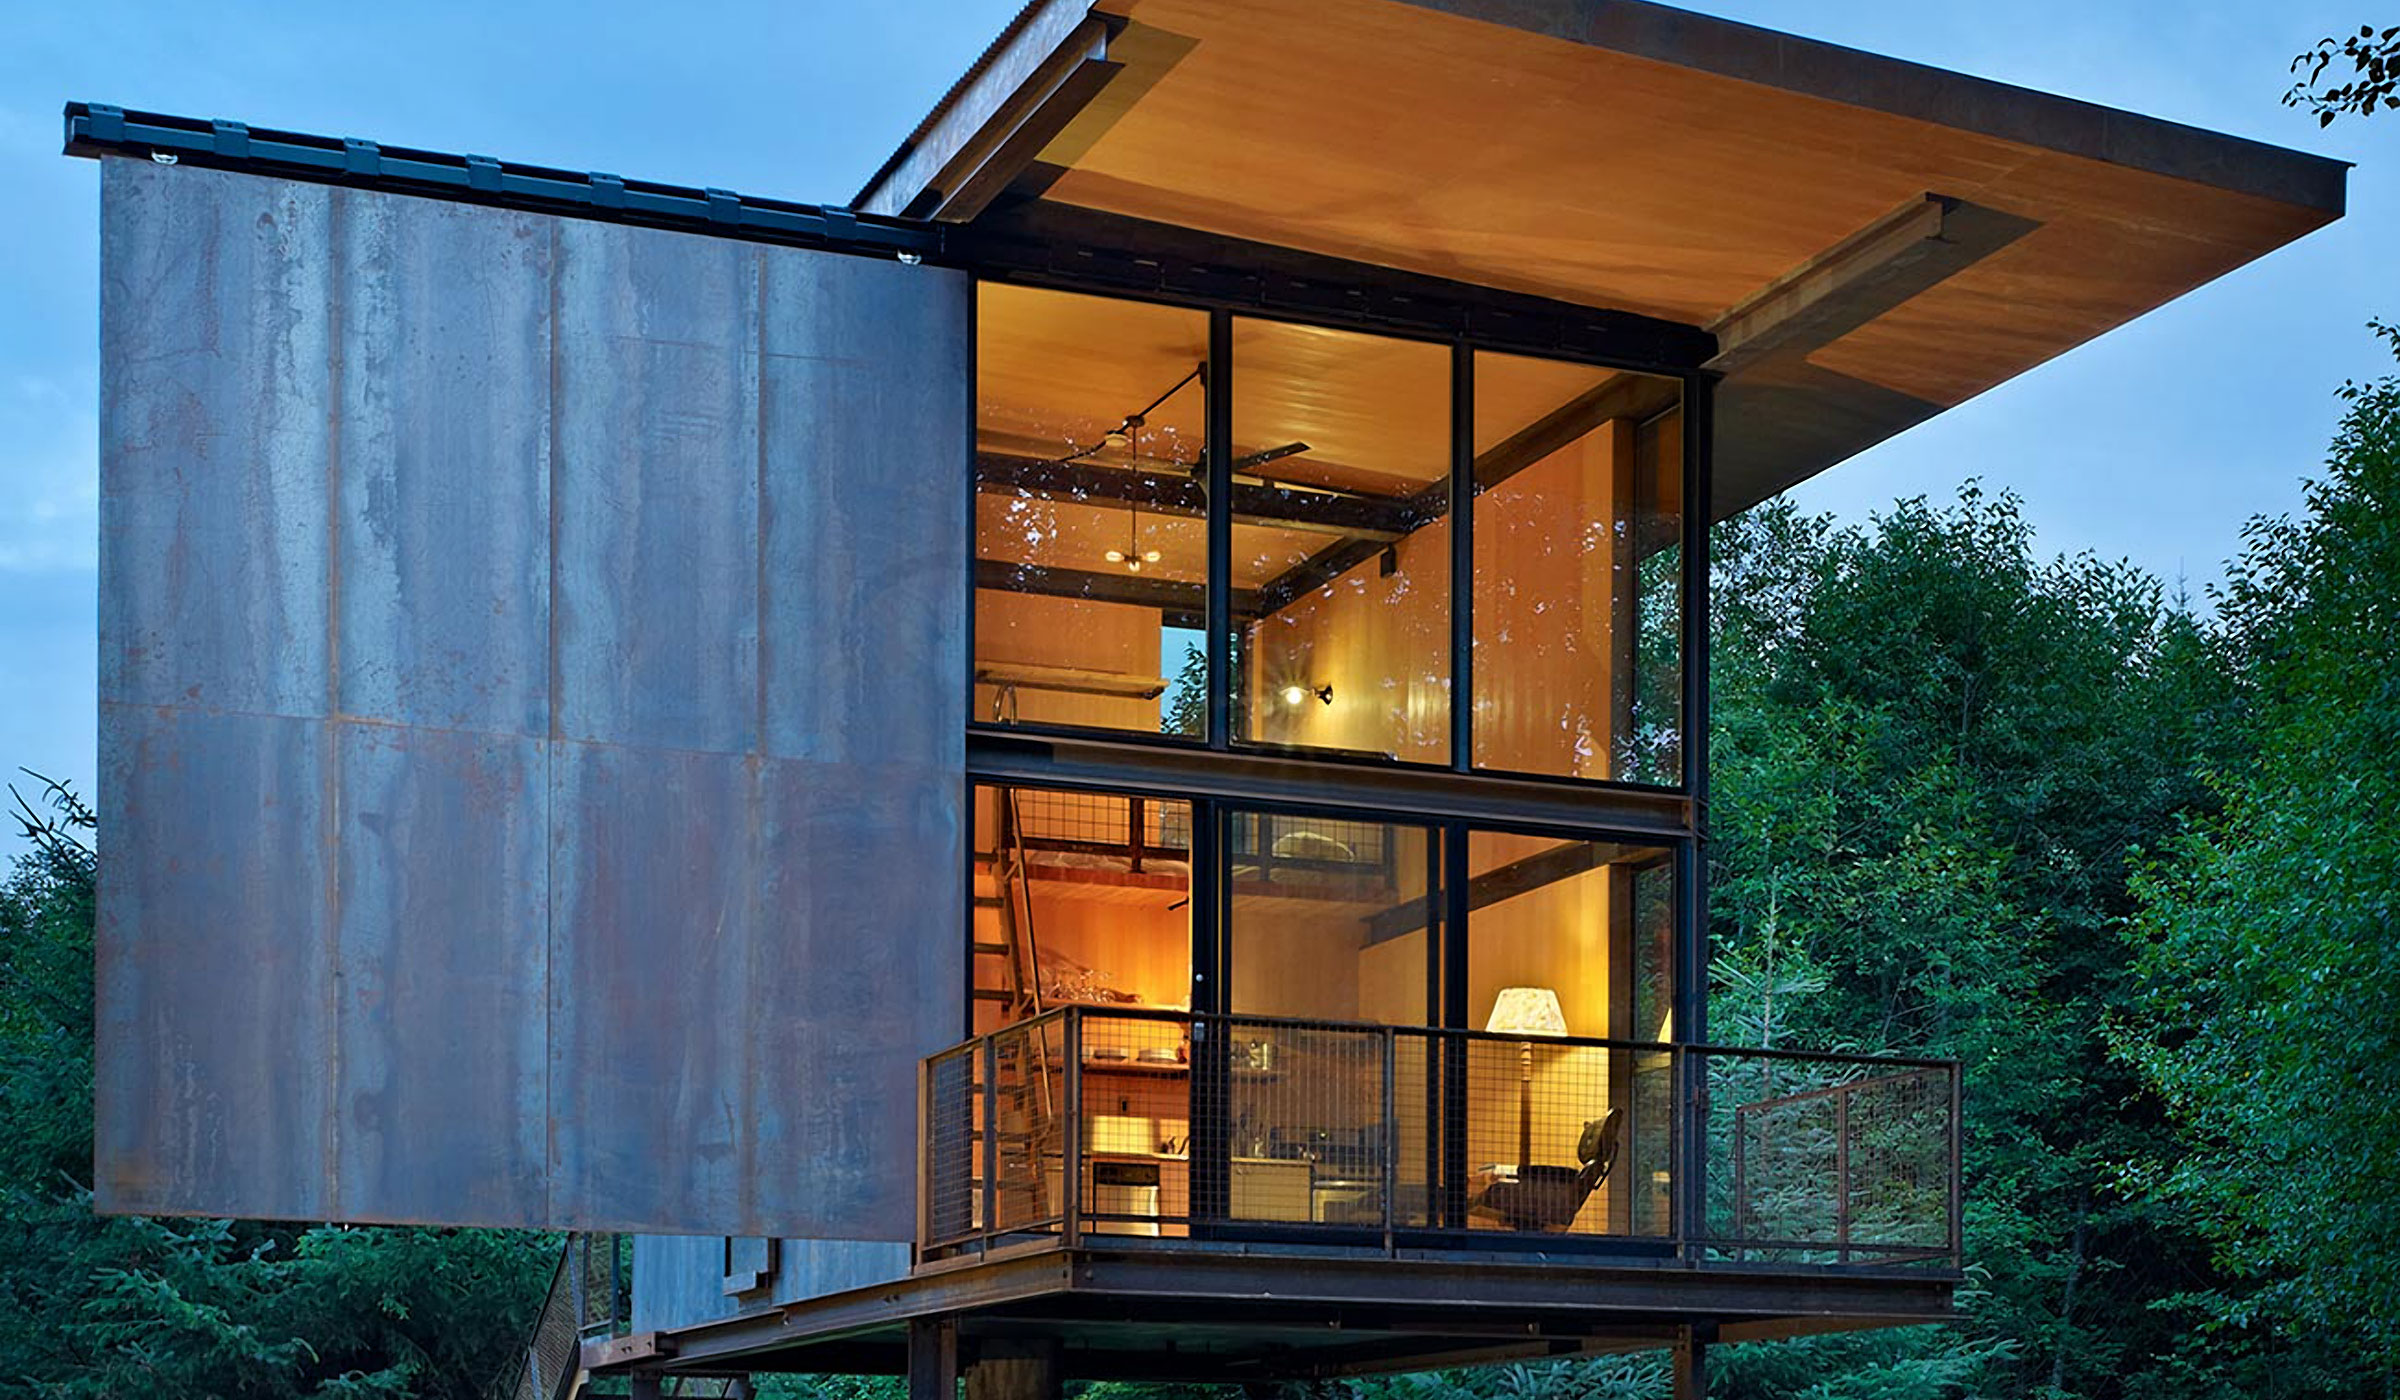 THE SOL DUC CABIN